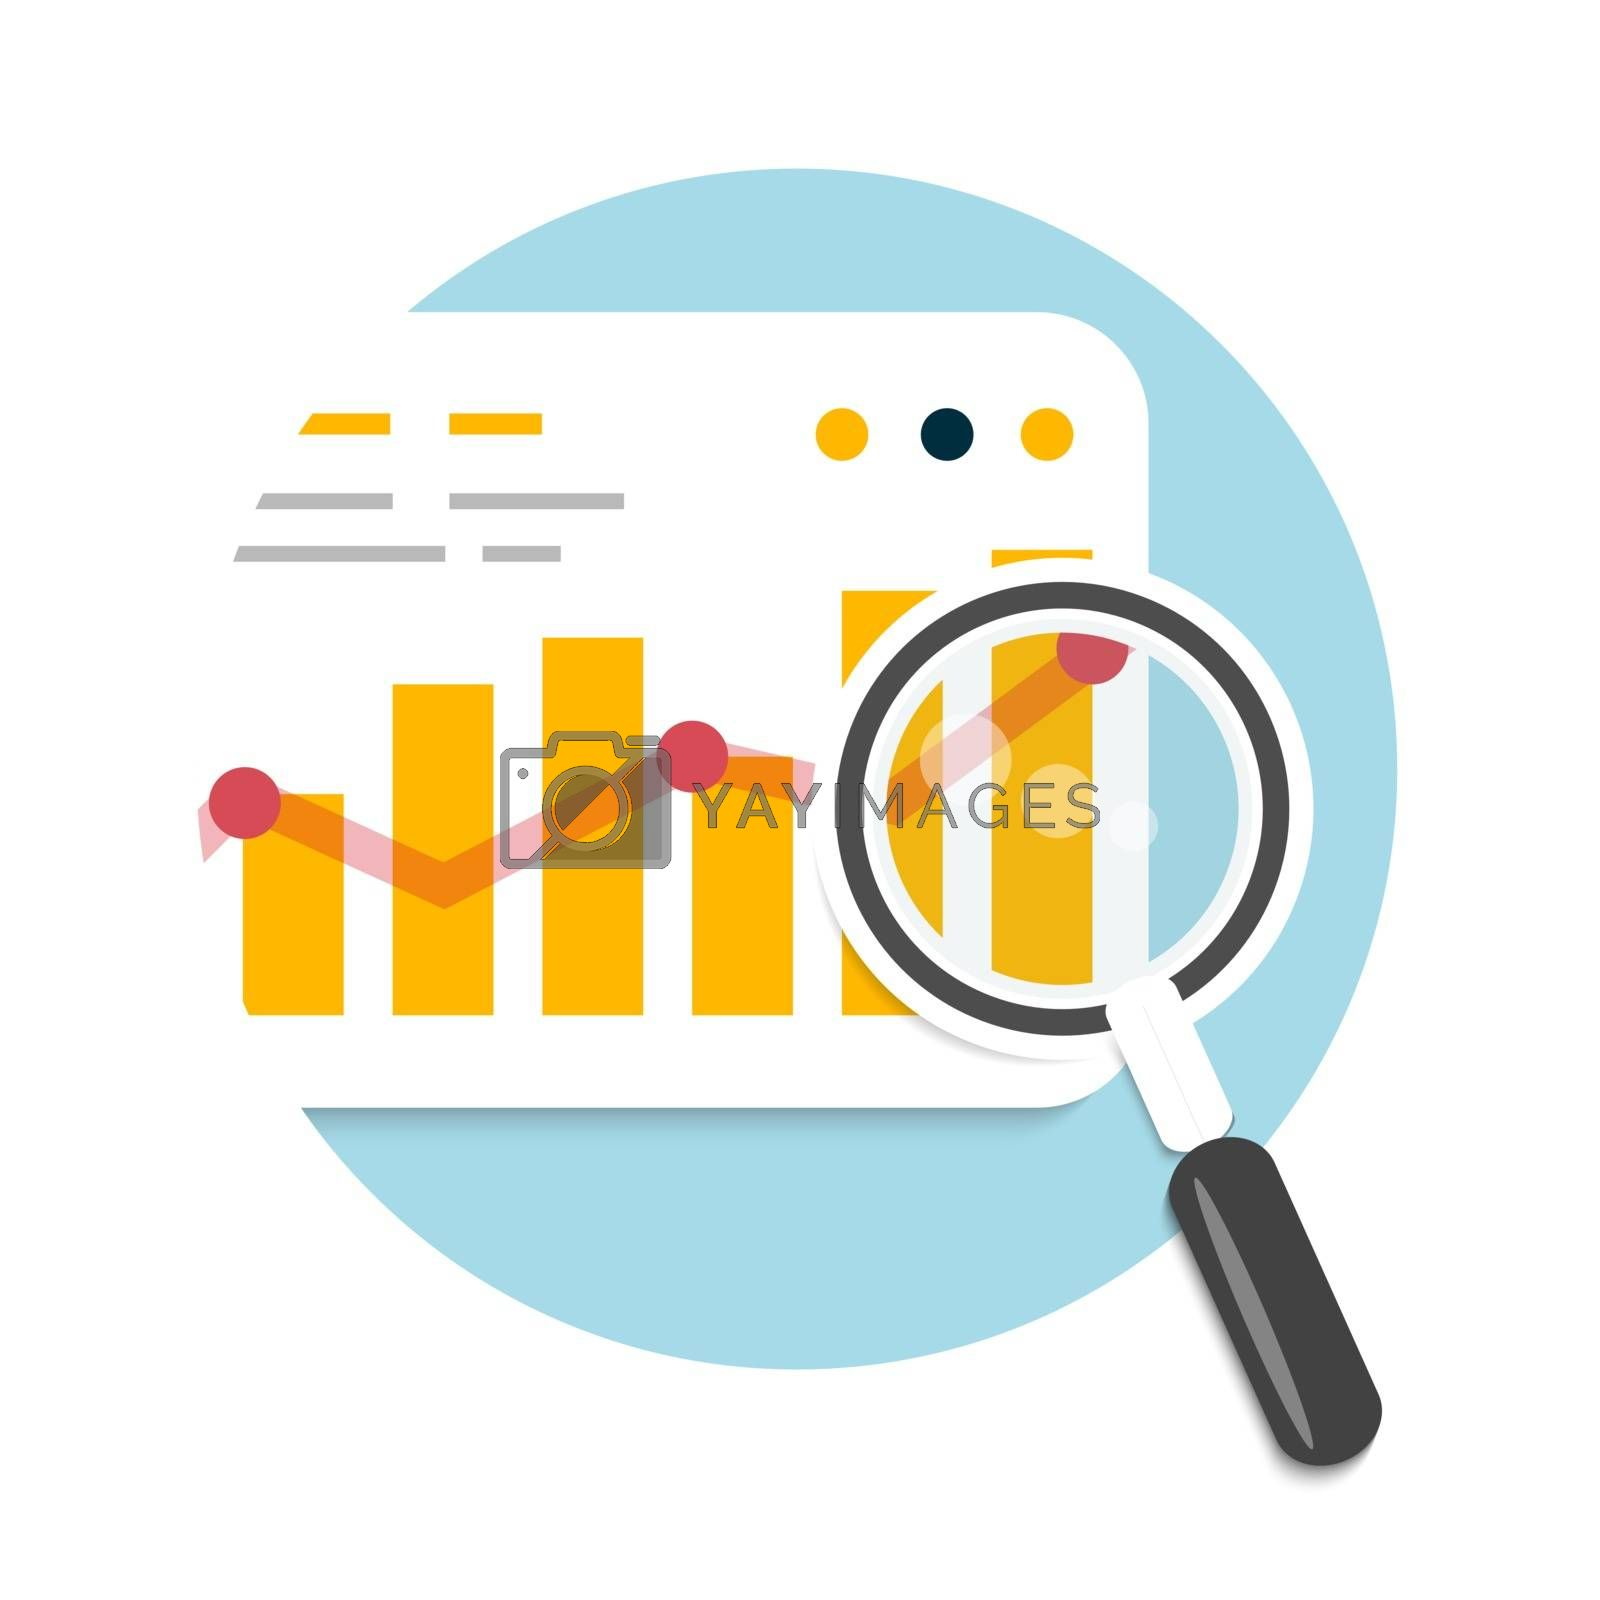 Magnifying glass and chart. Business concept of analyzing